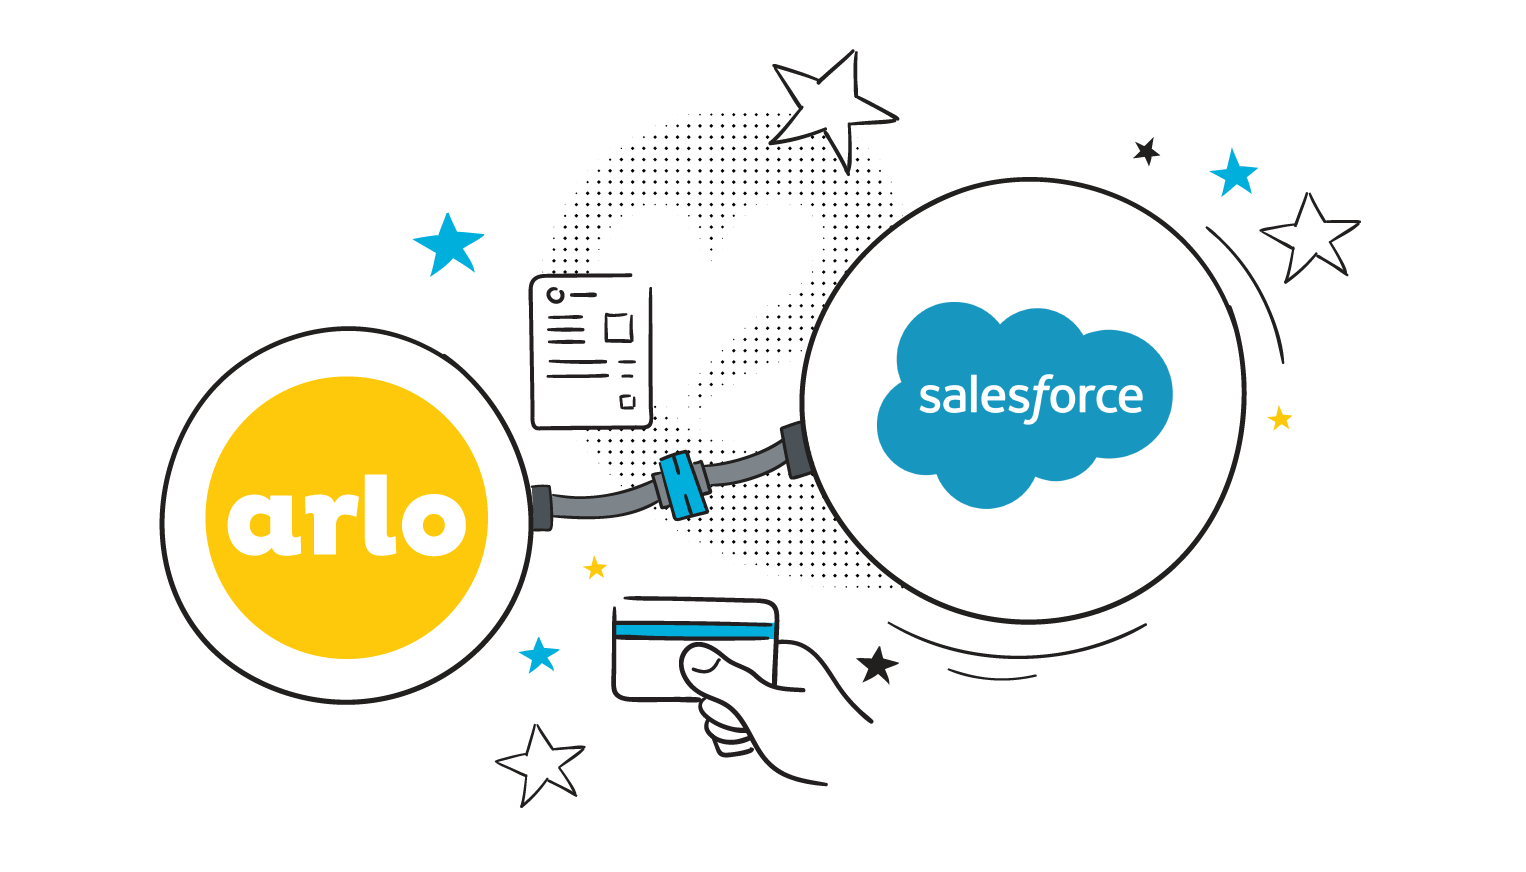 Explore Arlo's salesforce event management app for training providers